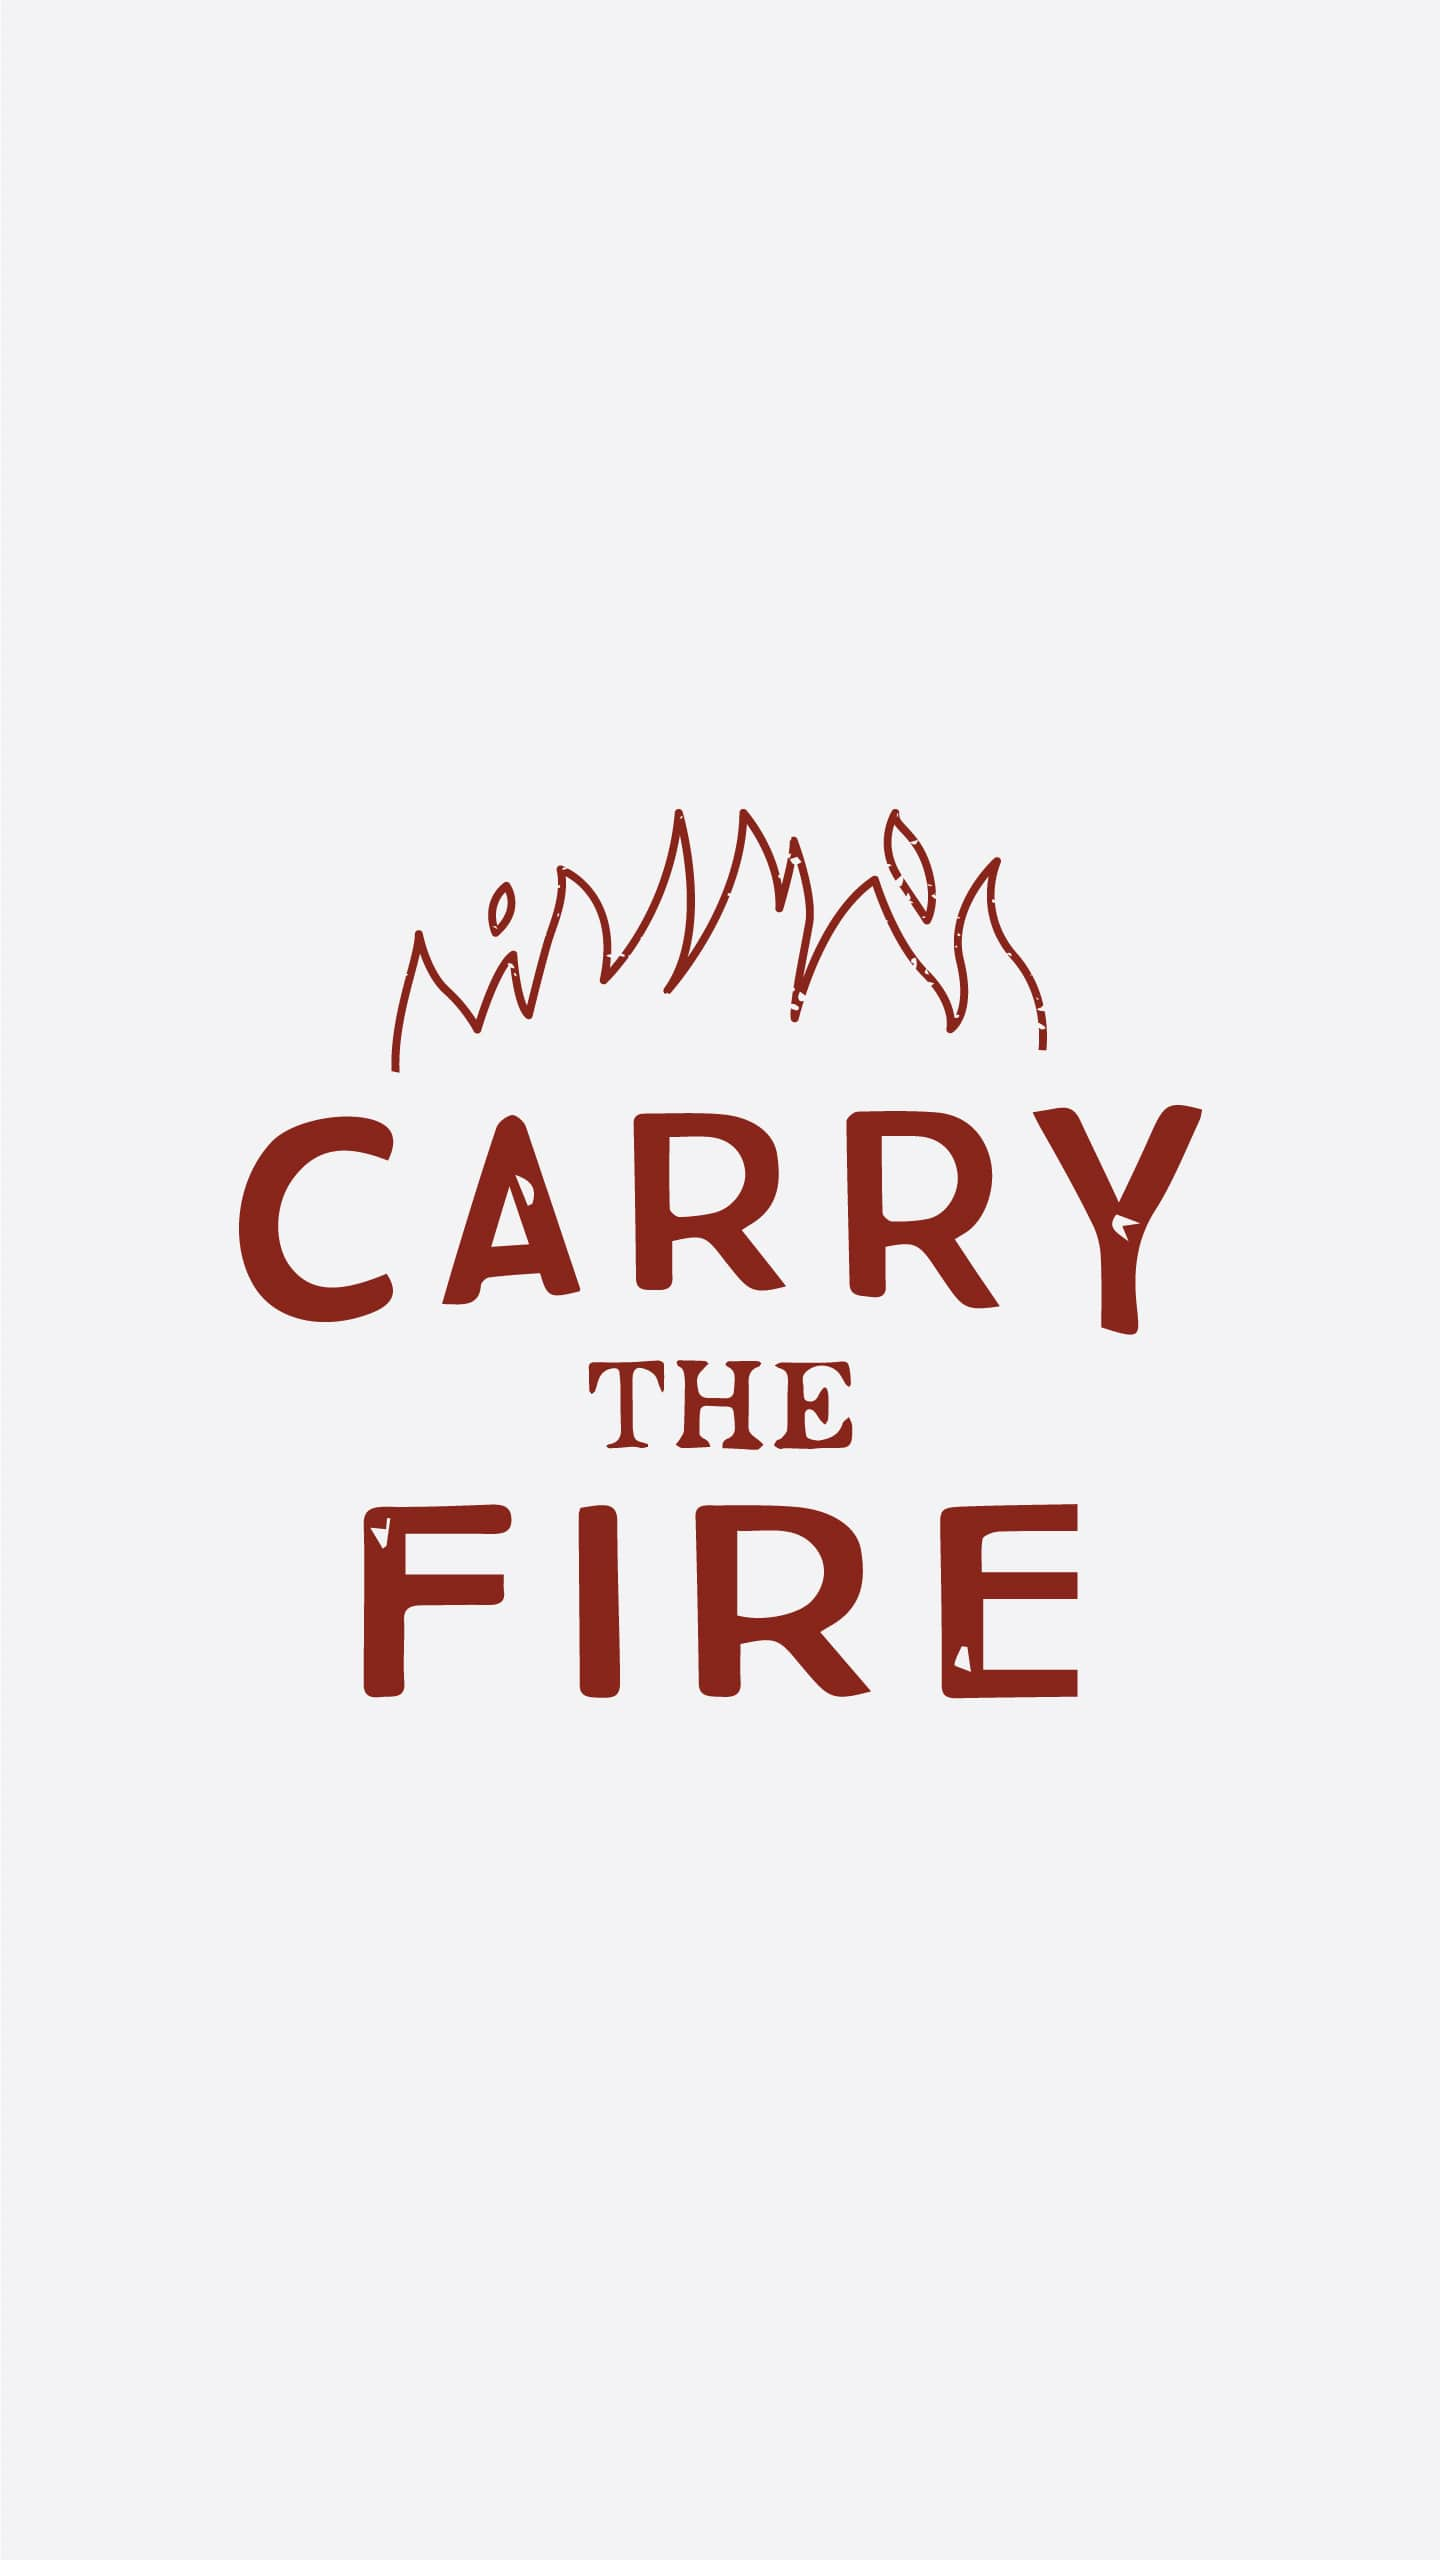 carry the fire lessons from cormac mccarthy s the road the carry the fire 3